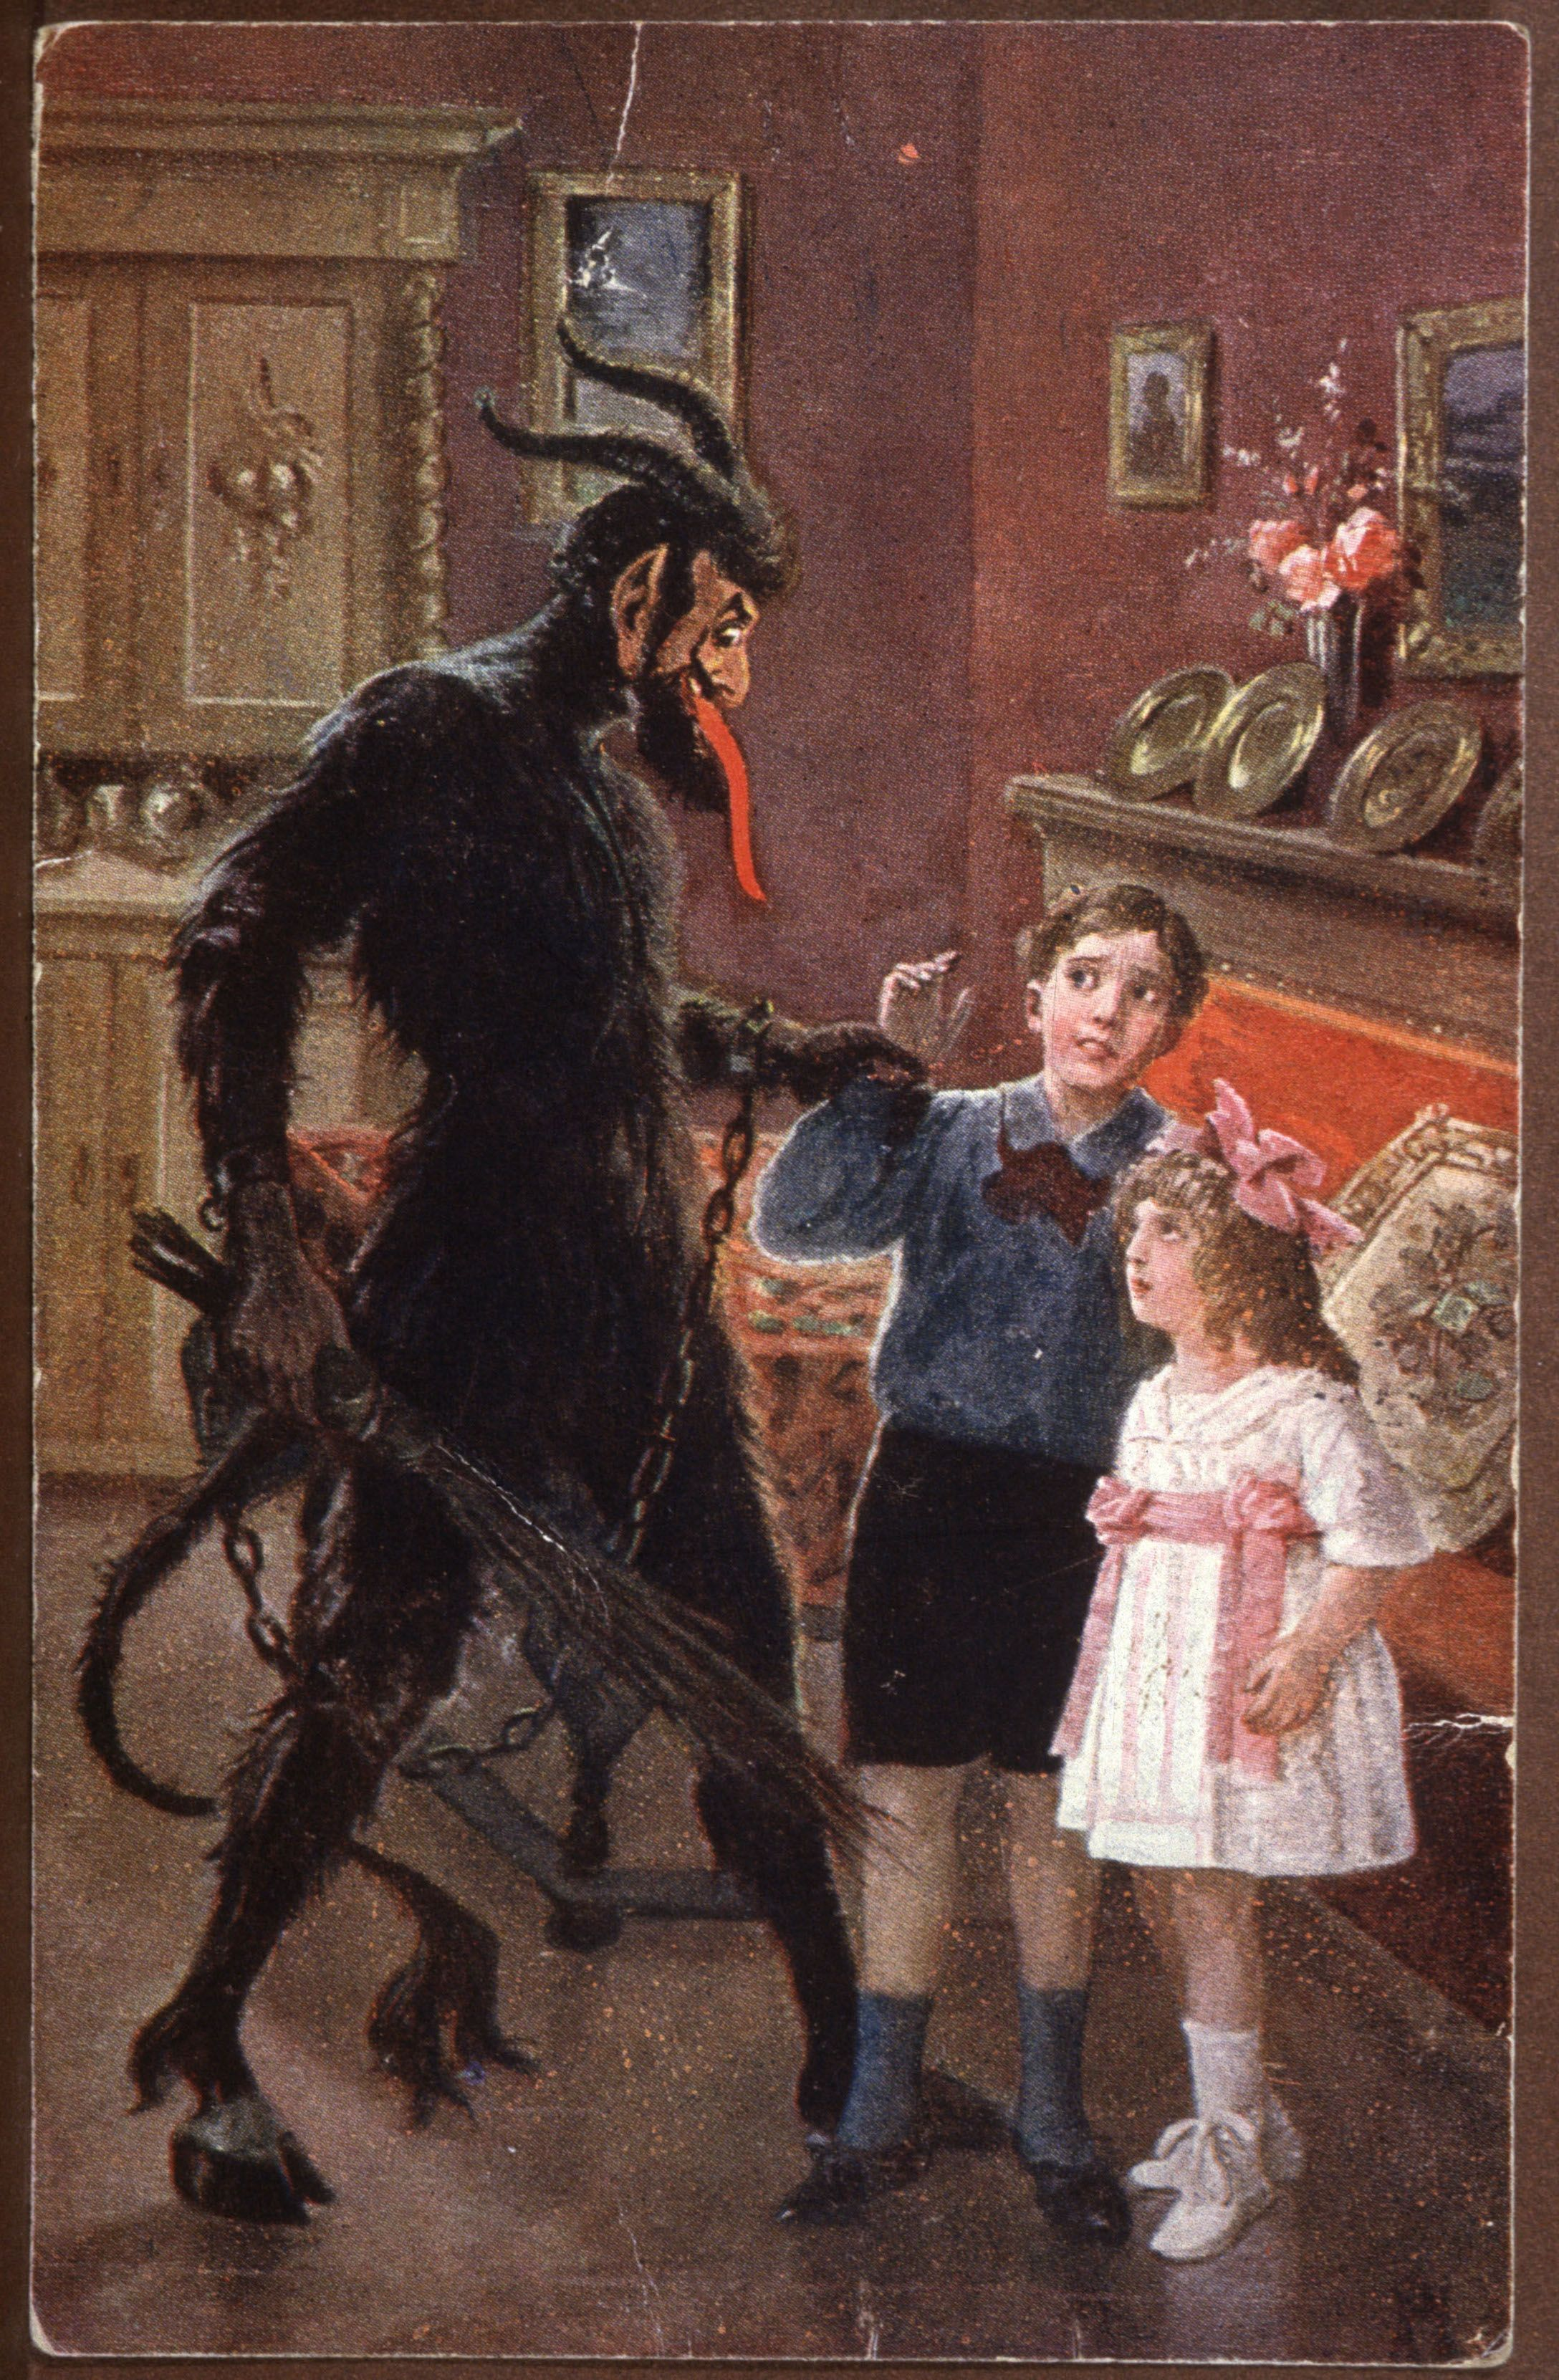 Greetings From Krampus: Gorgeous Old Postcards Of Santa's Demonic